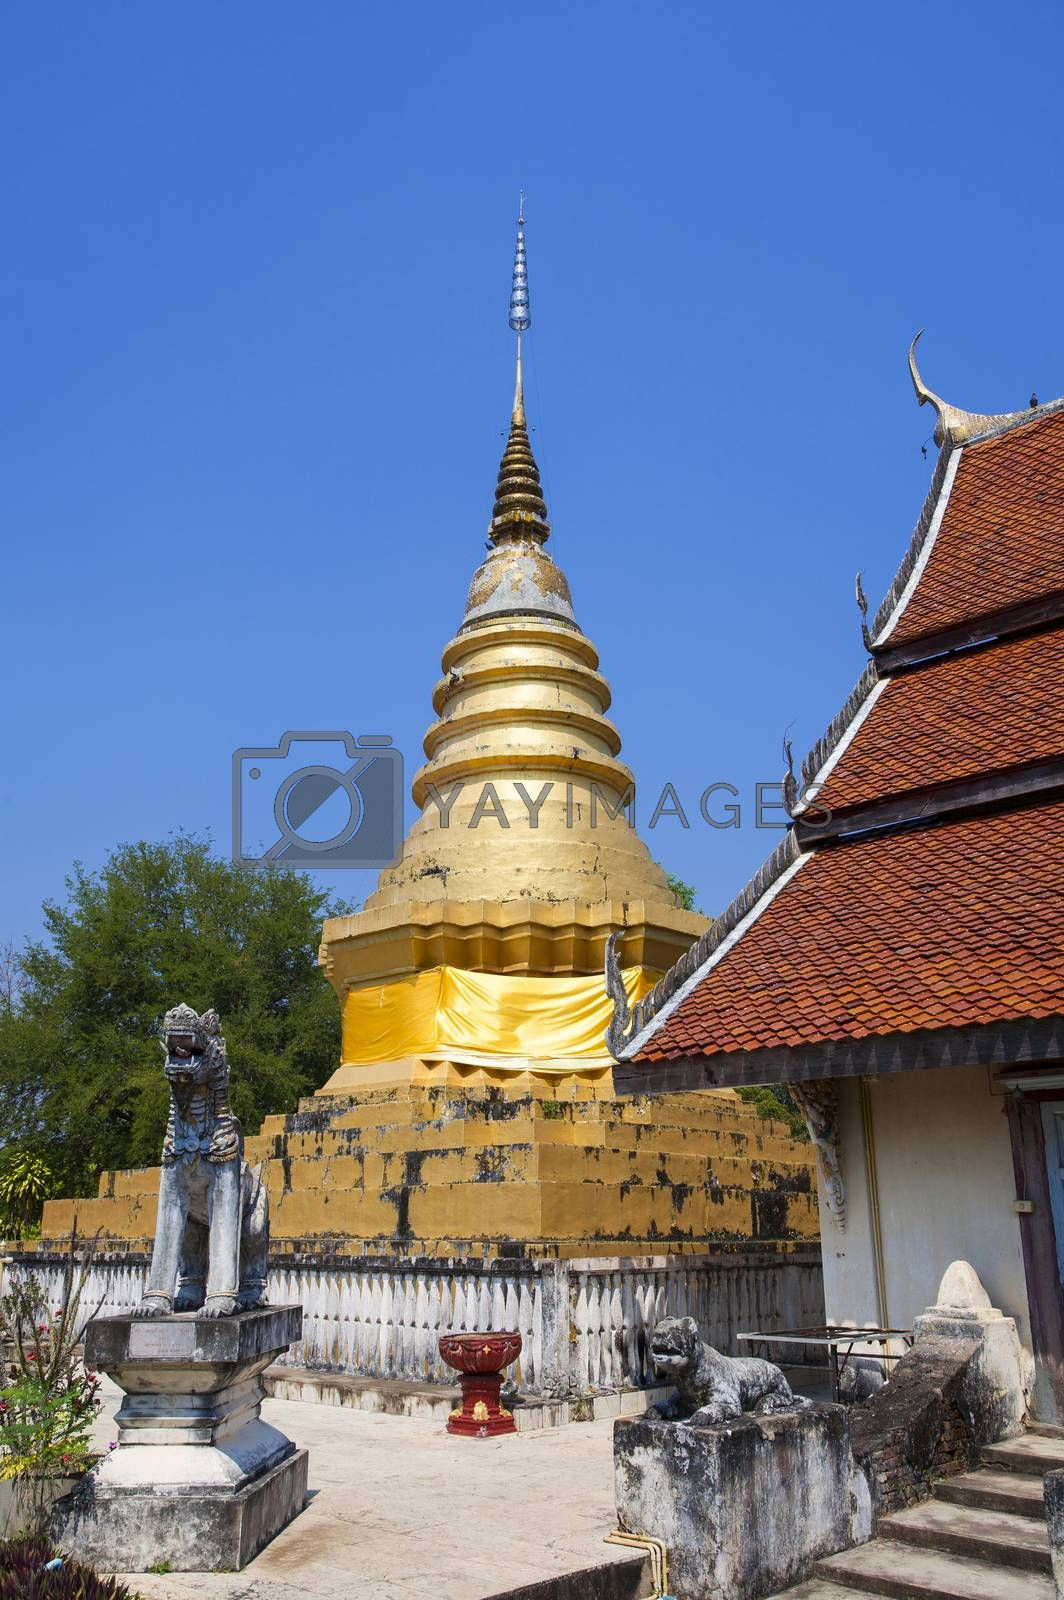 wat pratatchomping,Ancient and ancient located in Lampang.